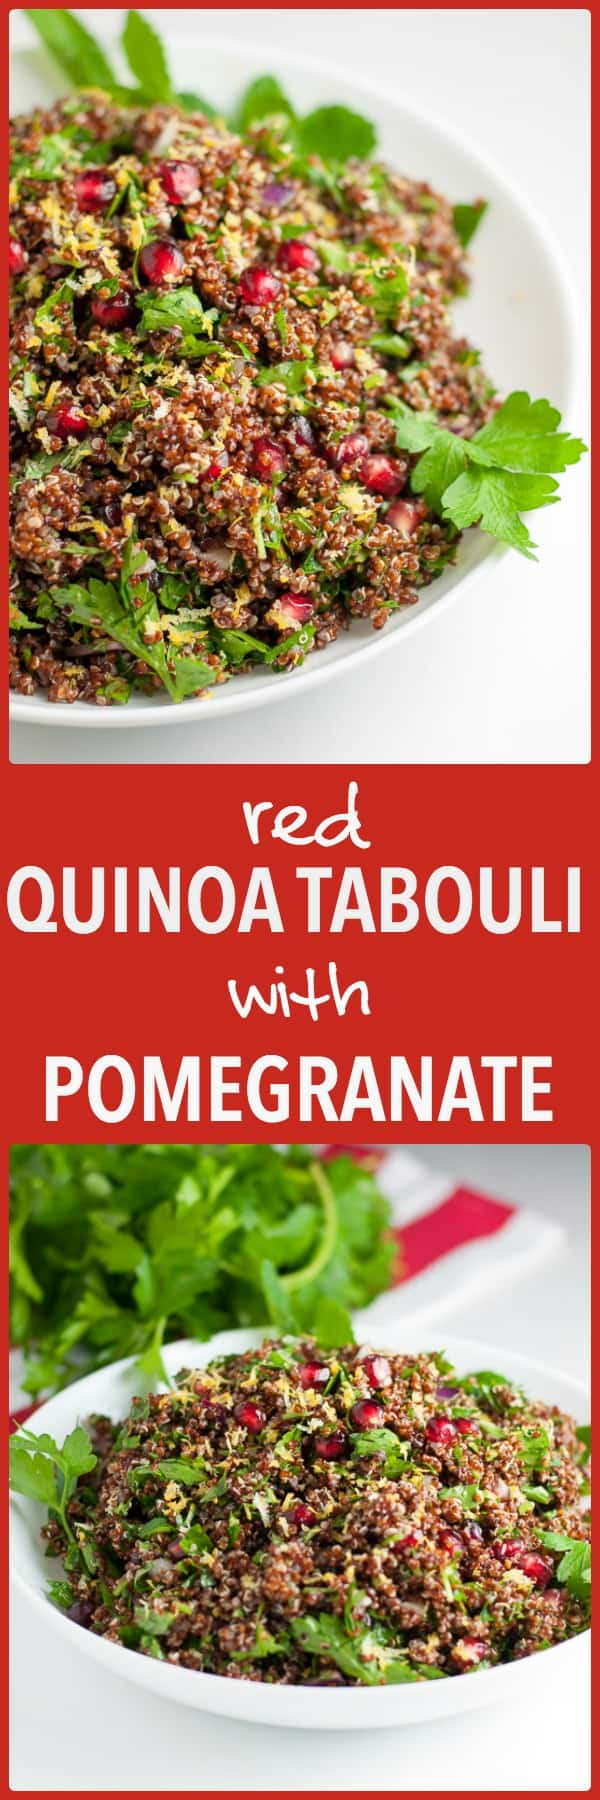 Red Quinoa Tabouli with Pomegranate. Gluten-free and vegan. All the flavour (and more) of traditional tabouli without the gluten!